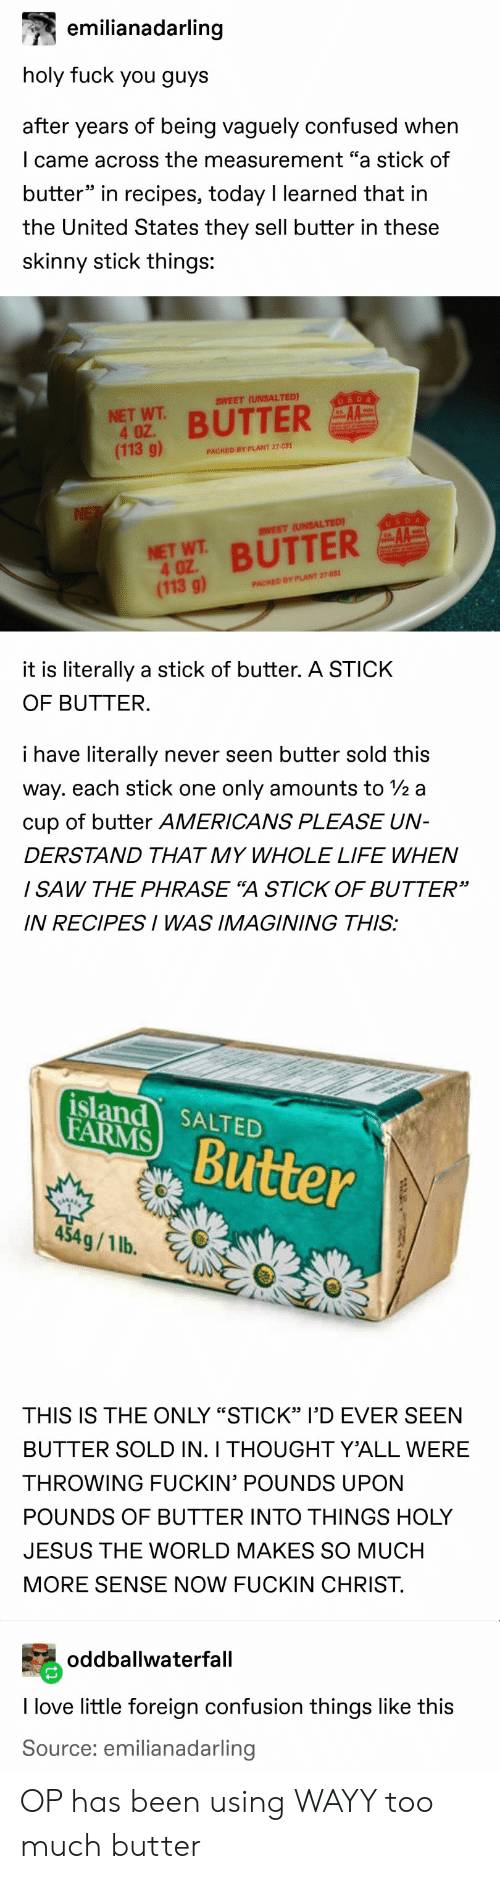 """Confused, Fuck You, and Jesus: emilianadarling  holy fuck you guys  after years of being vaguely confused when  I came across the measurement """"a stick of  butter"""" in recipes, today I learned that in  the United States they sell butter in these  skinny stick things:  SWEET (UNSALTED)  USDA  NET WT  4 OZ.  (113 g)  BUTTER  PACKED BY PLANT 27-031  NE  USDA  SWEET (UNSALTED)  NET WT BUTTER  4 OZ  (113 g)  PACKED BY PLANT 27-031  it is literally a stick of butter. A STICK  OF BUTTER.  i have literally  never seen butter sold this  way. each stick one  only amounts to /2 a  cup of butter AMERICANS PLEASE UN-  DERSTAND THAT MY WHOLE LIFE WHEN  / SAW THE PHRASE """"A STICK OF BUTTER""""  IN RECIPESI WAS IMAGINING THIS:  island SALTED  FARMS  Butter  454g/1 lb.  THIS IS THE ONLY """"STICK"""" l'D EVER SEEN  BUTTER SOLD IN. I THOUGHT Y'ALL WERE  THROWING FUCKIN' POUNDS UPON  POUNDS OF BUTTER INTO THINGS HOLY  JESUS THE WORLD MAKES SO MUCH  MORE SENSE NOW FUCKIN CHRIST.  oddballwaterfall  I love little foreign confusion things like this  Source: emilianadarling OP has been using WAYY too much butter"""